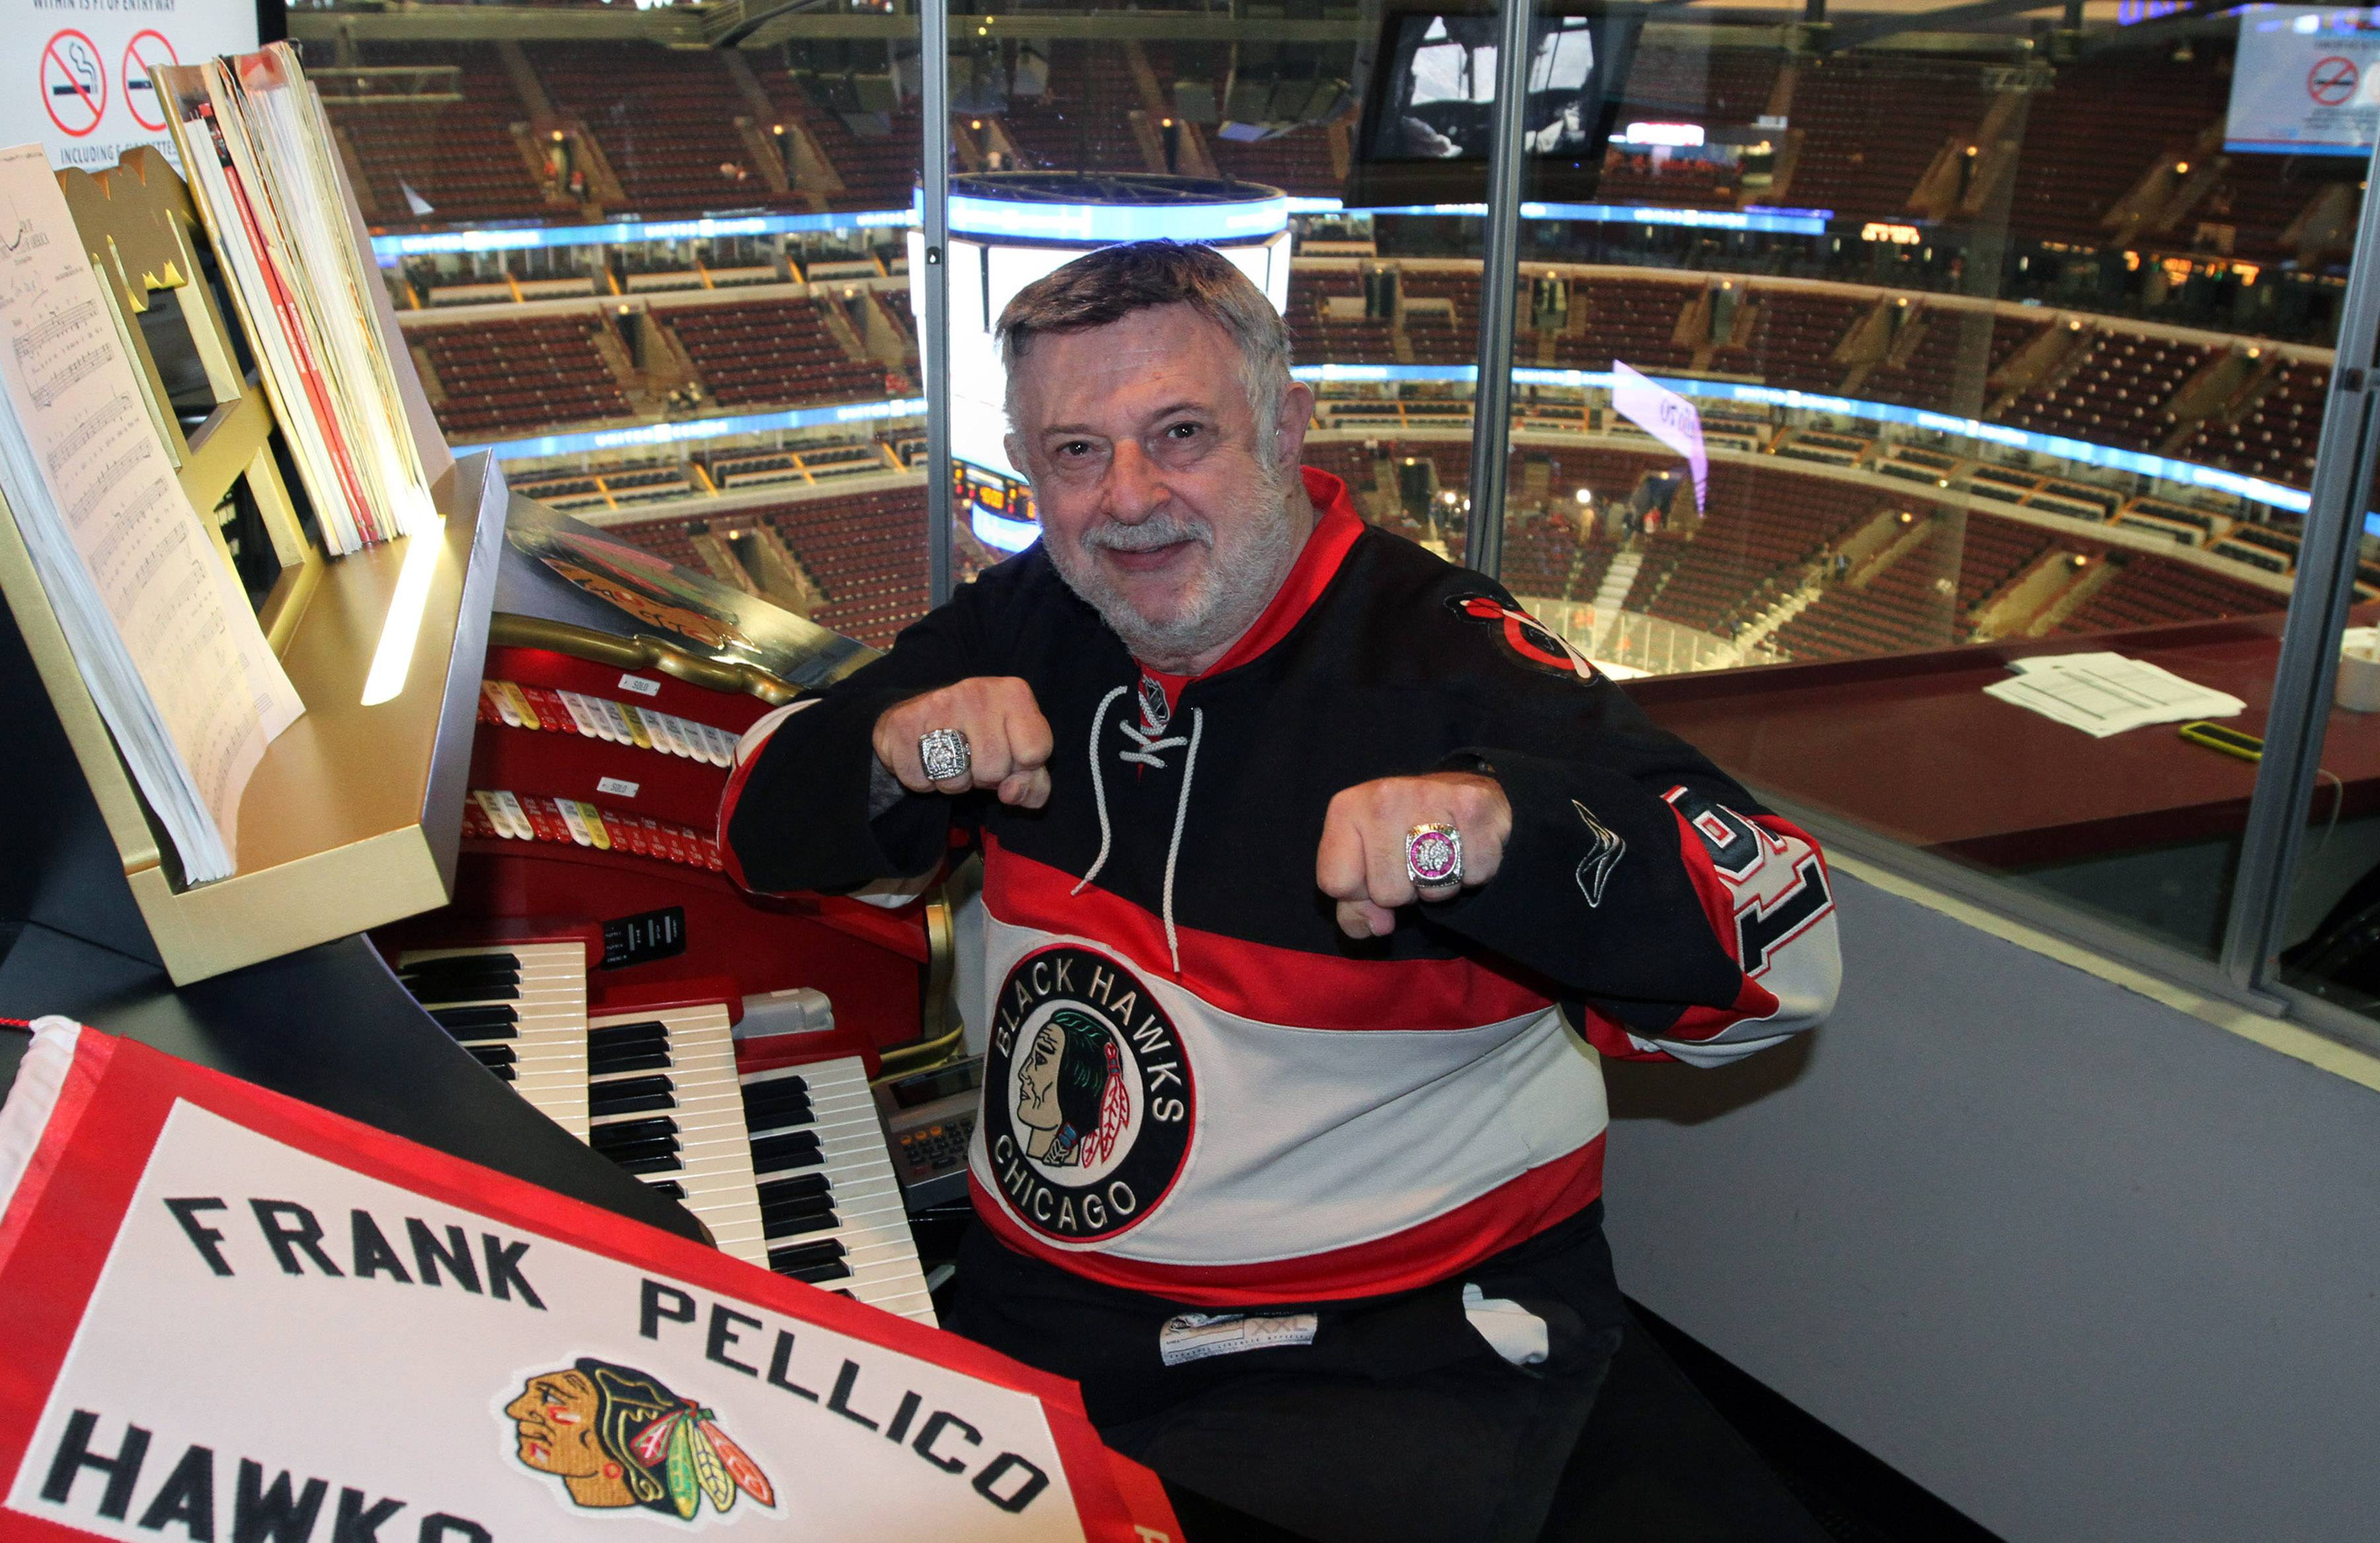 Chicago Blackhawks organist Frank Pellico shows his Stanley Cup rings before the start of Game 7 of the Western Conference finals Sunday at the United Center in Chicago.